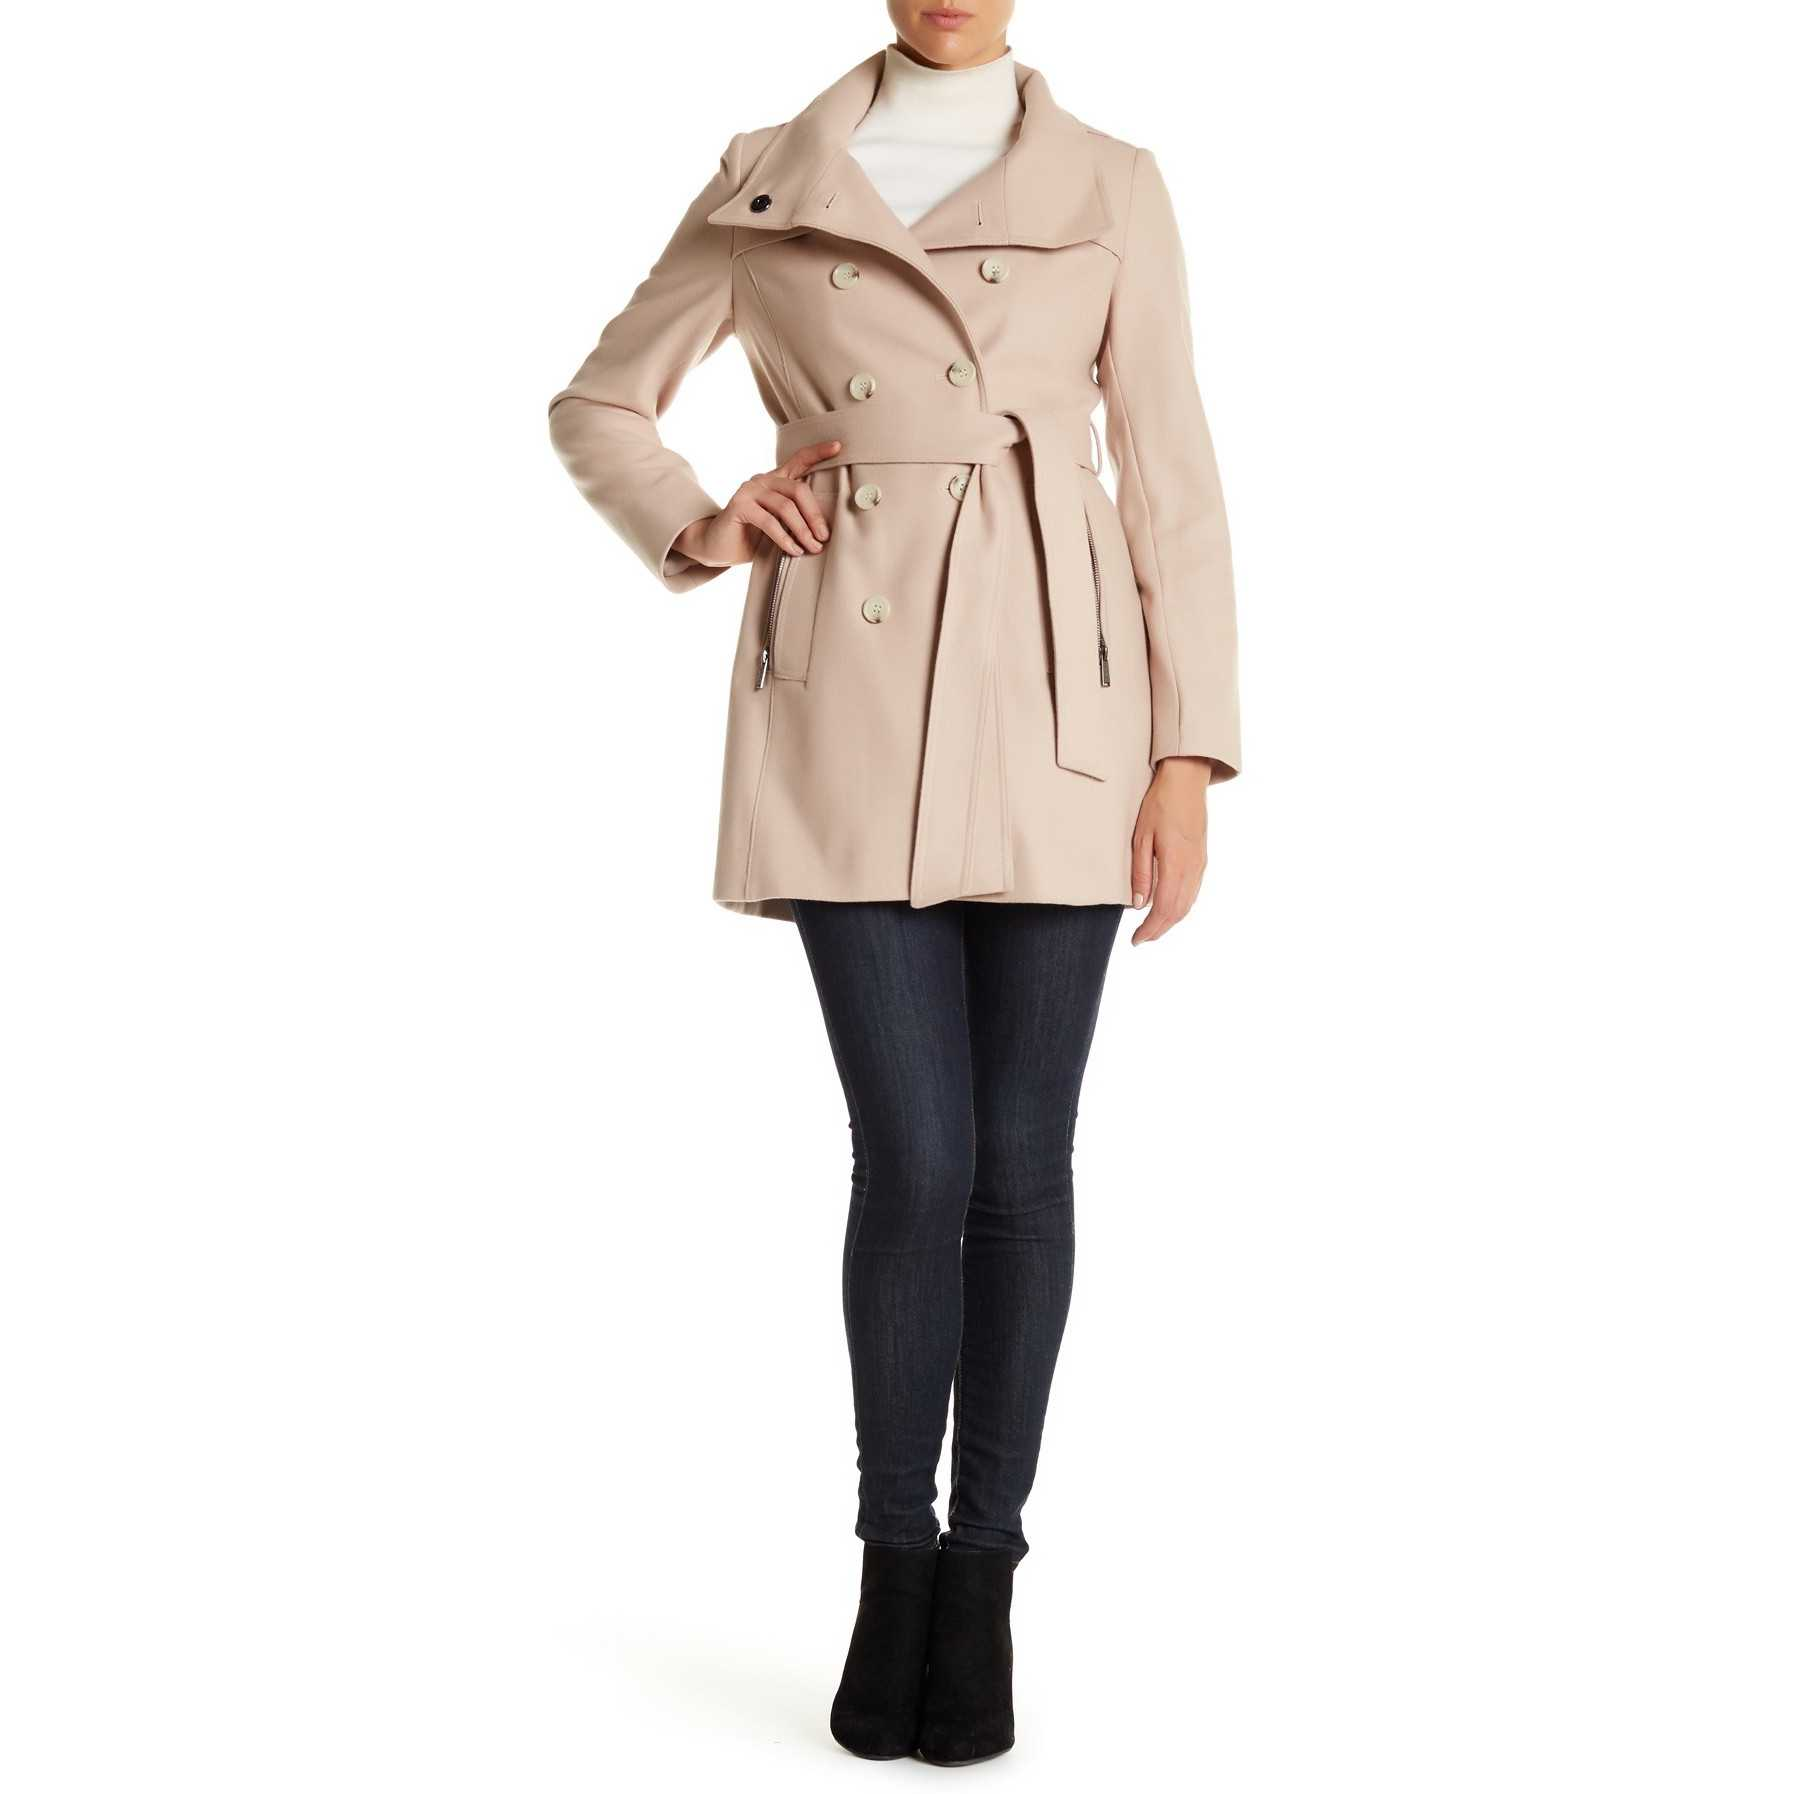 DKNY Double Breasted Stand Collar Wool Blend Trench Coat PEARL BEIG trench dama